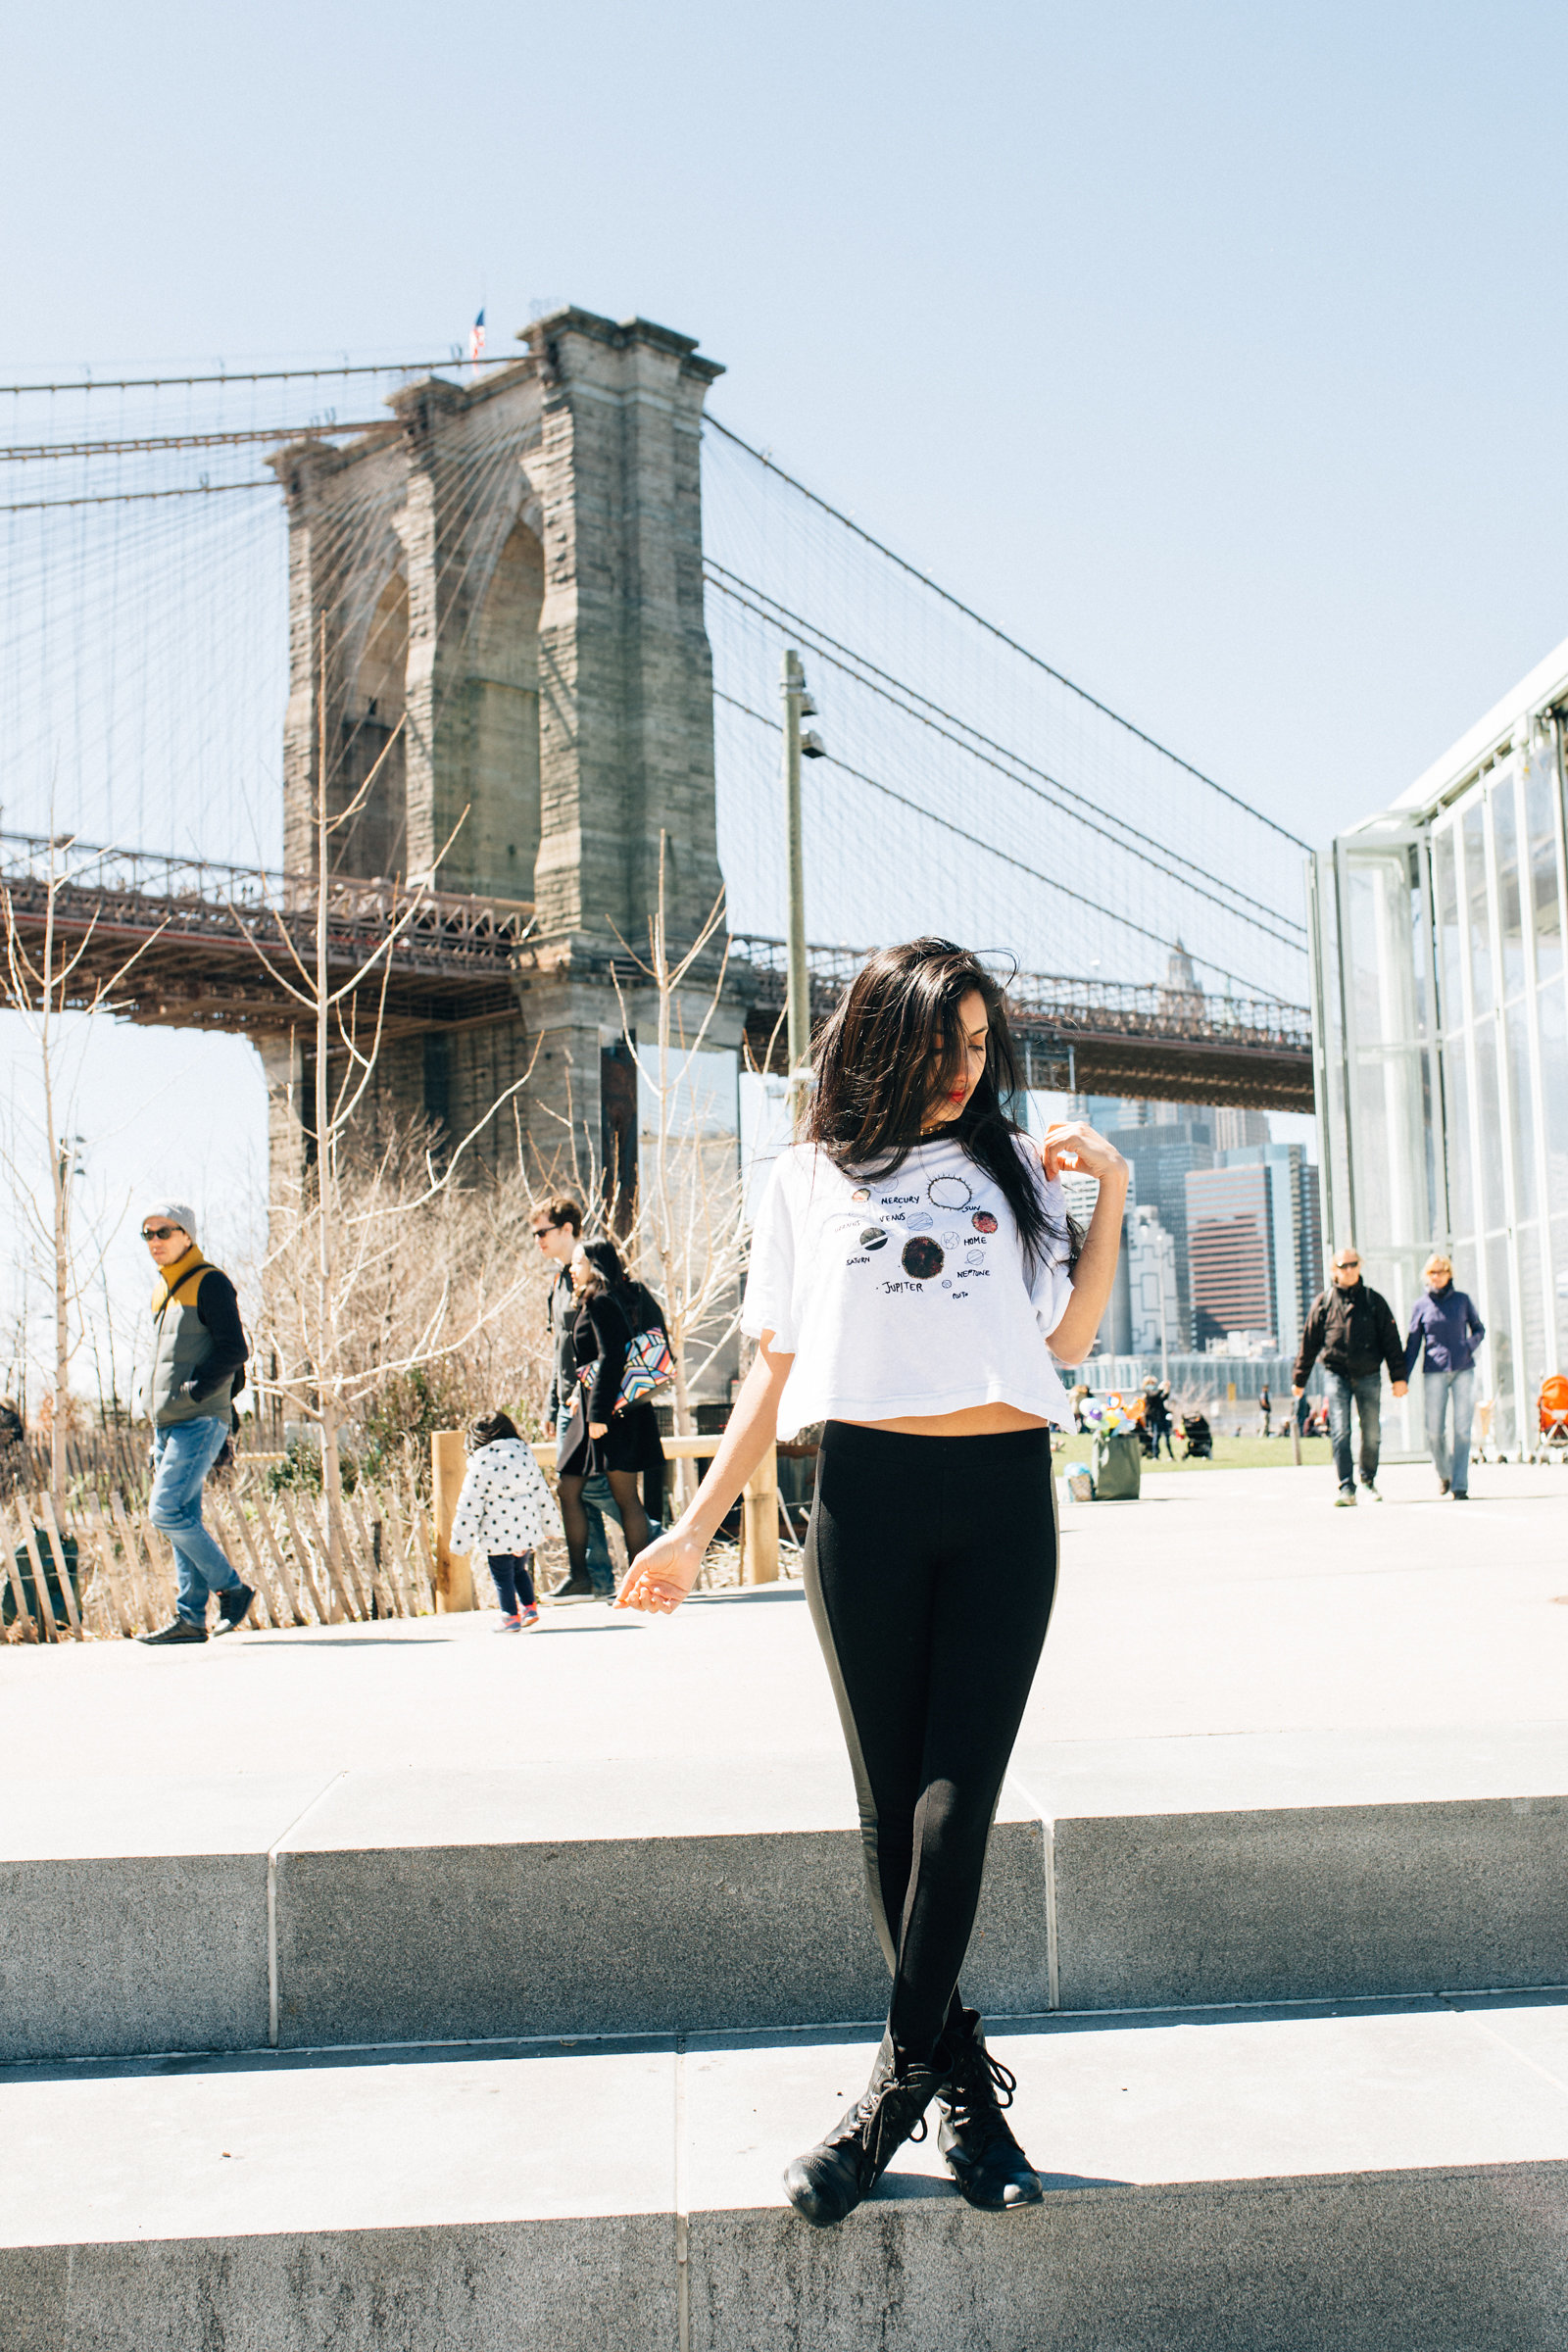 earthday.planets.fp.fpme.freepeople.denim.leggings.leather.nyc.fashionblogger